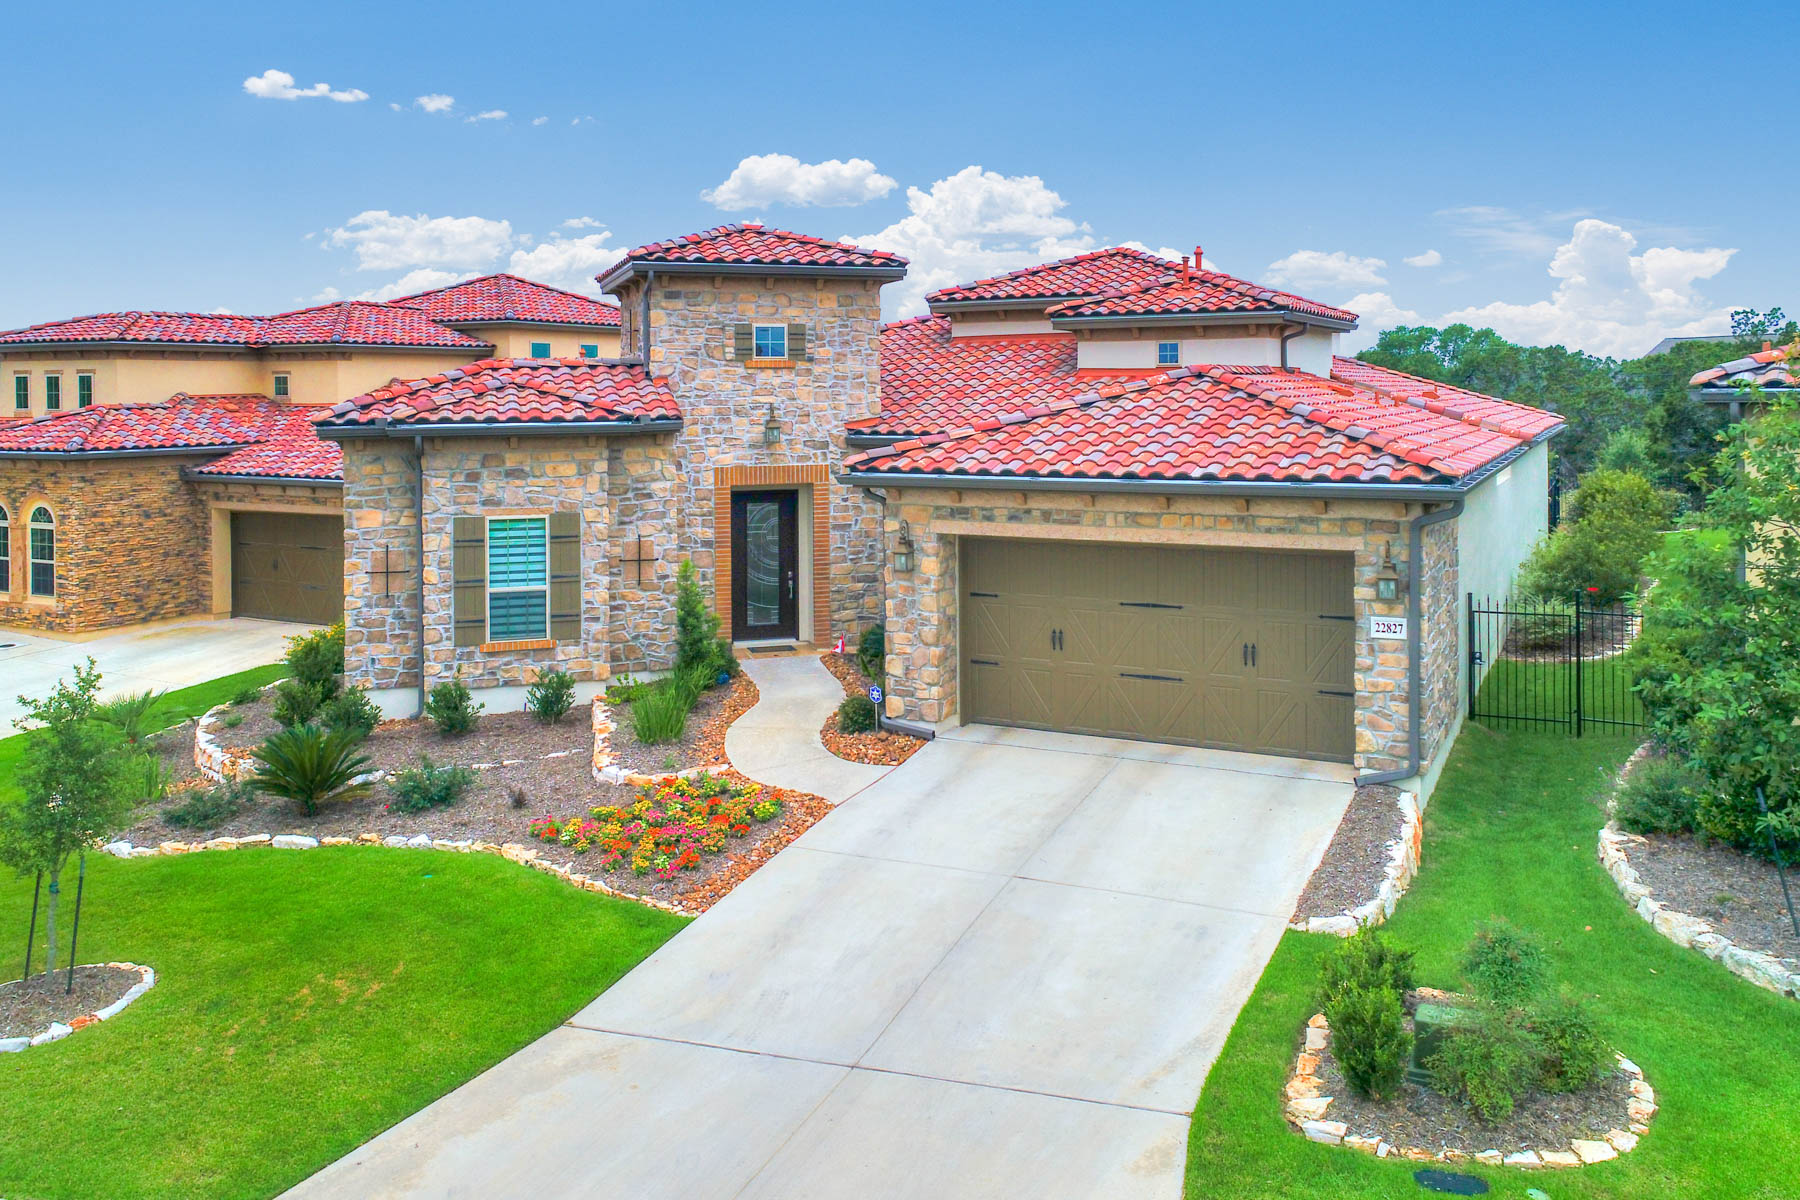 獨棟家庭住宅 為 出售 在 Exceptional Home in a Tranquil Setting 22827 Estacado, San Antonio, 德克薩斯州, 78261 美國